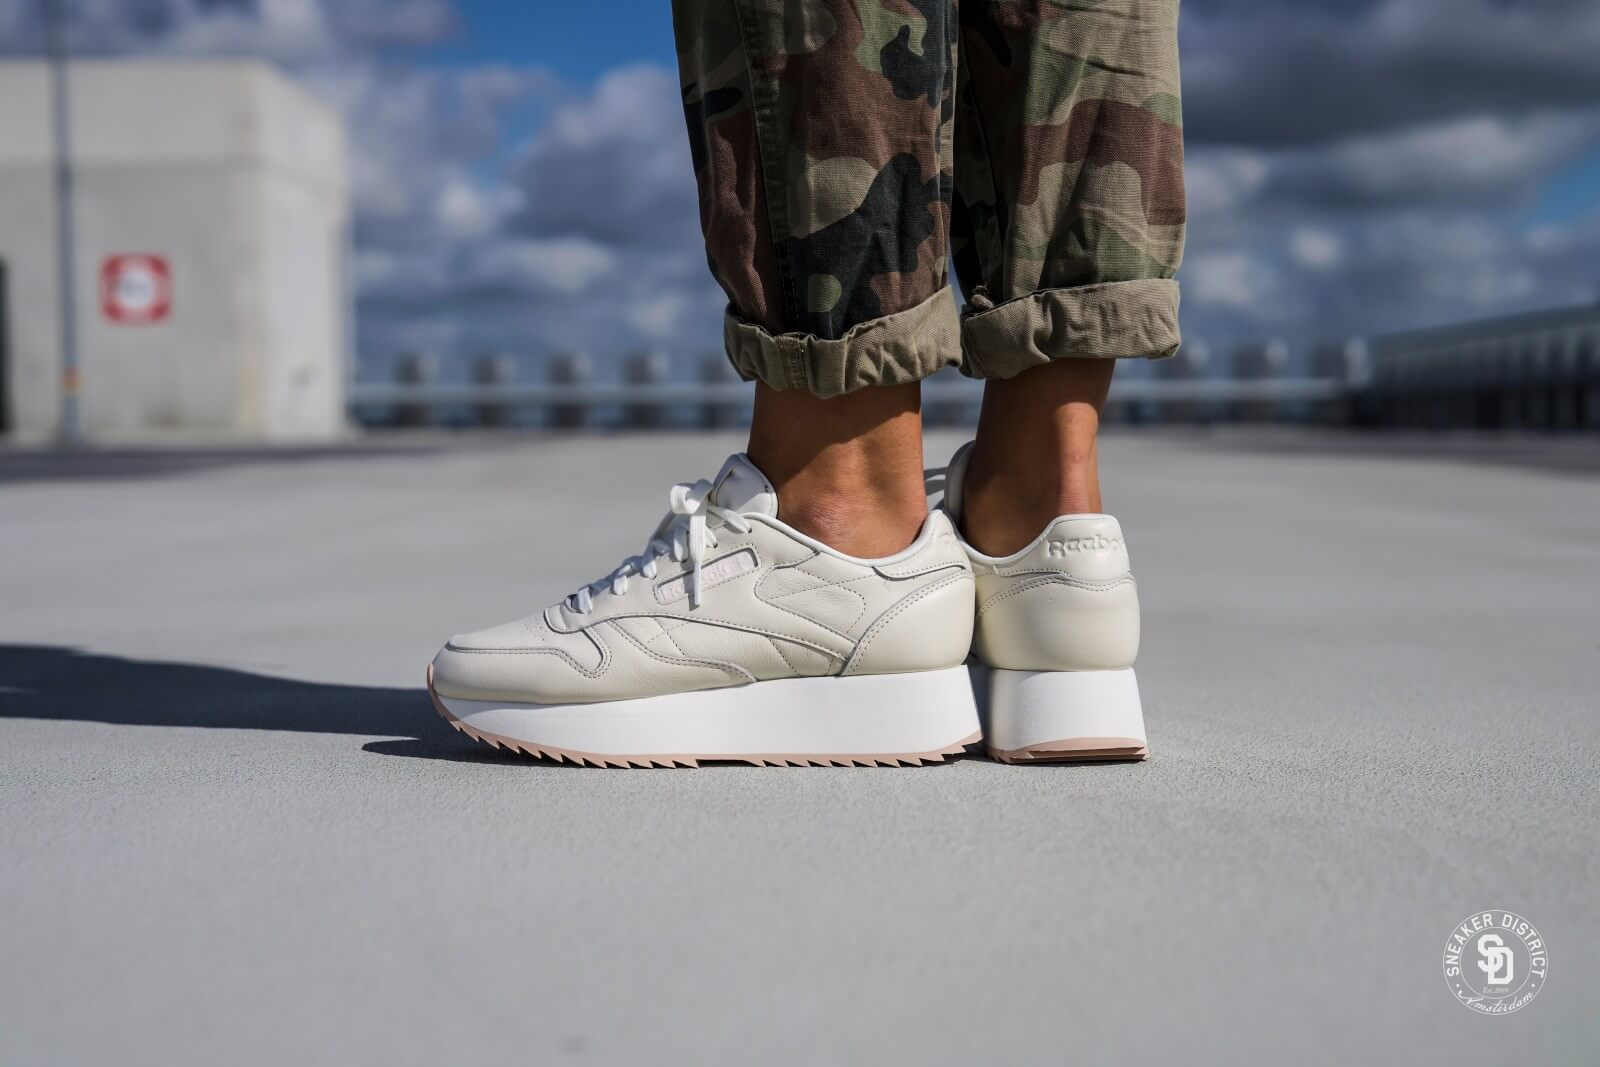 reebok leather double - 58% OFF